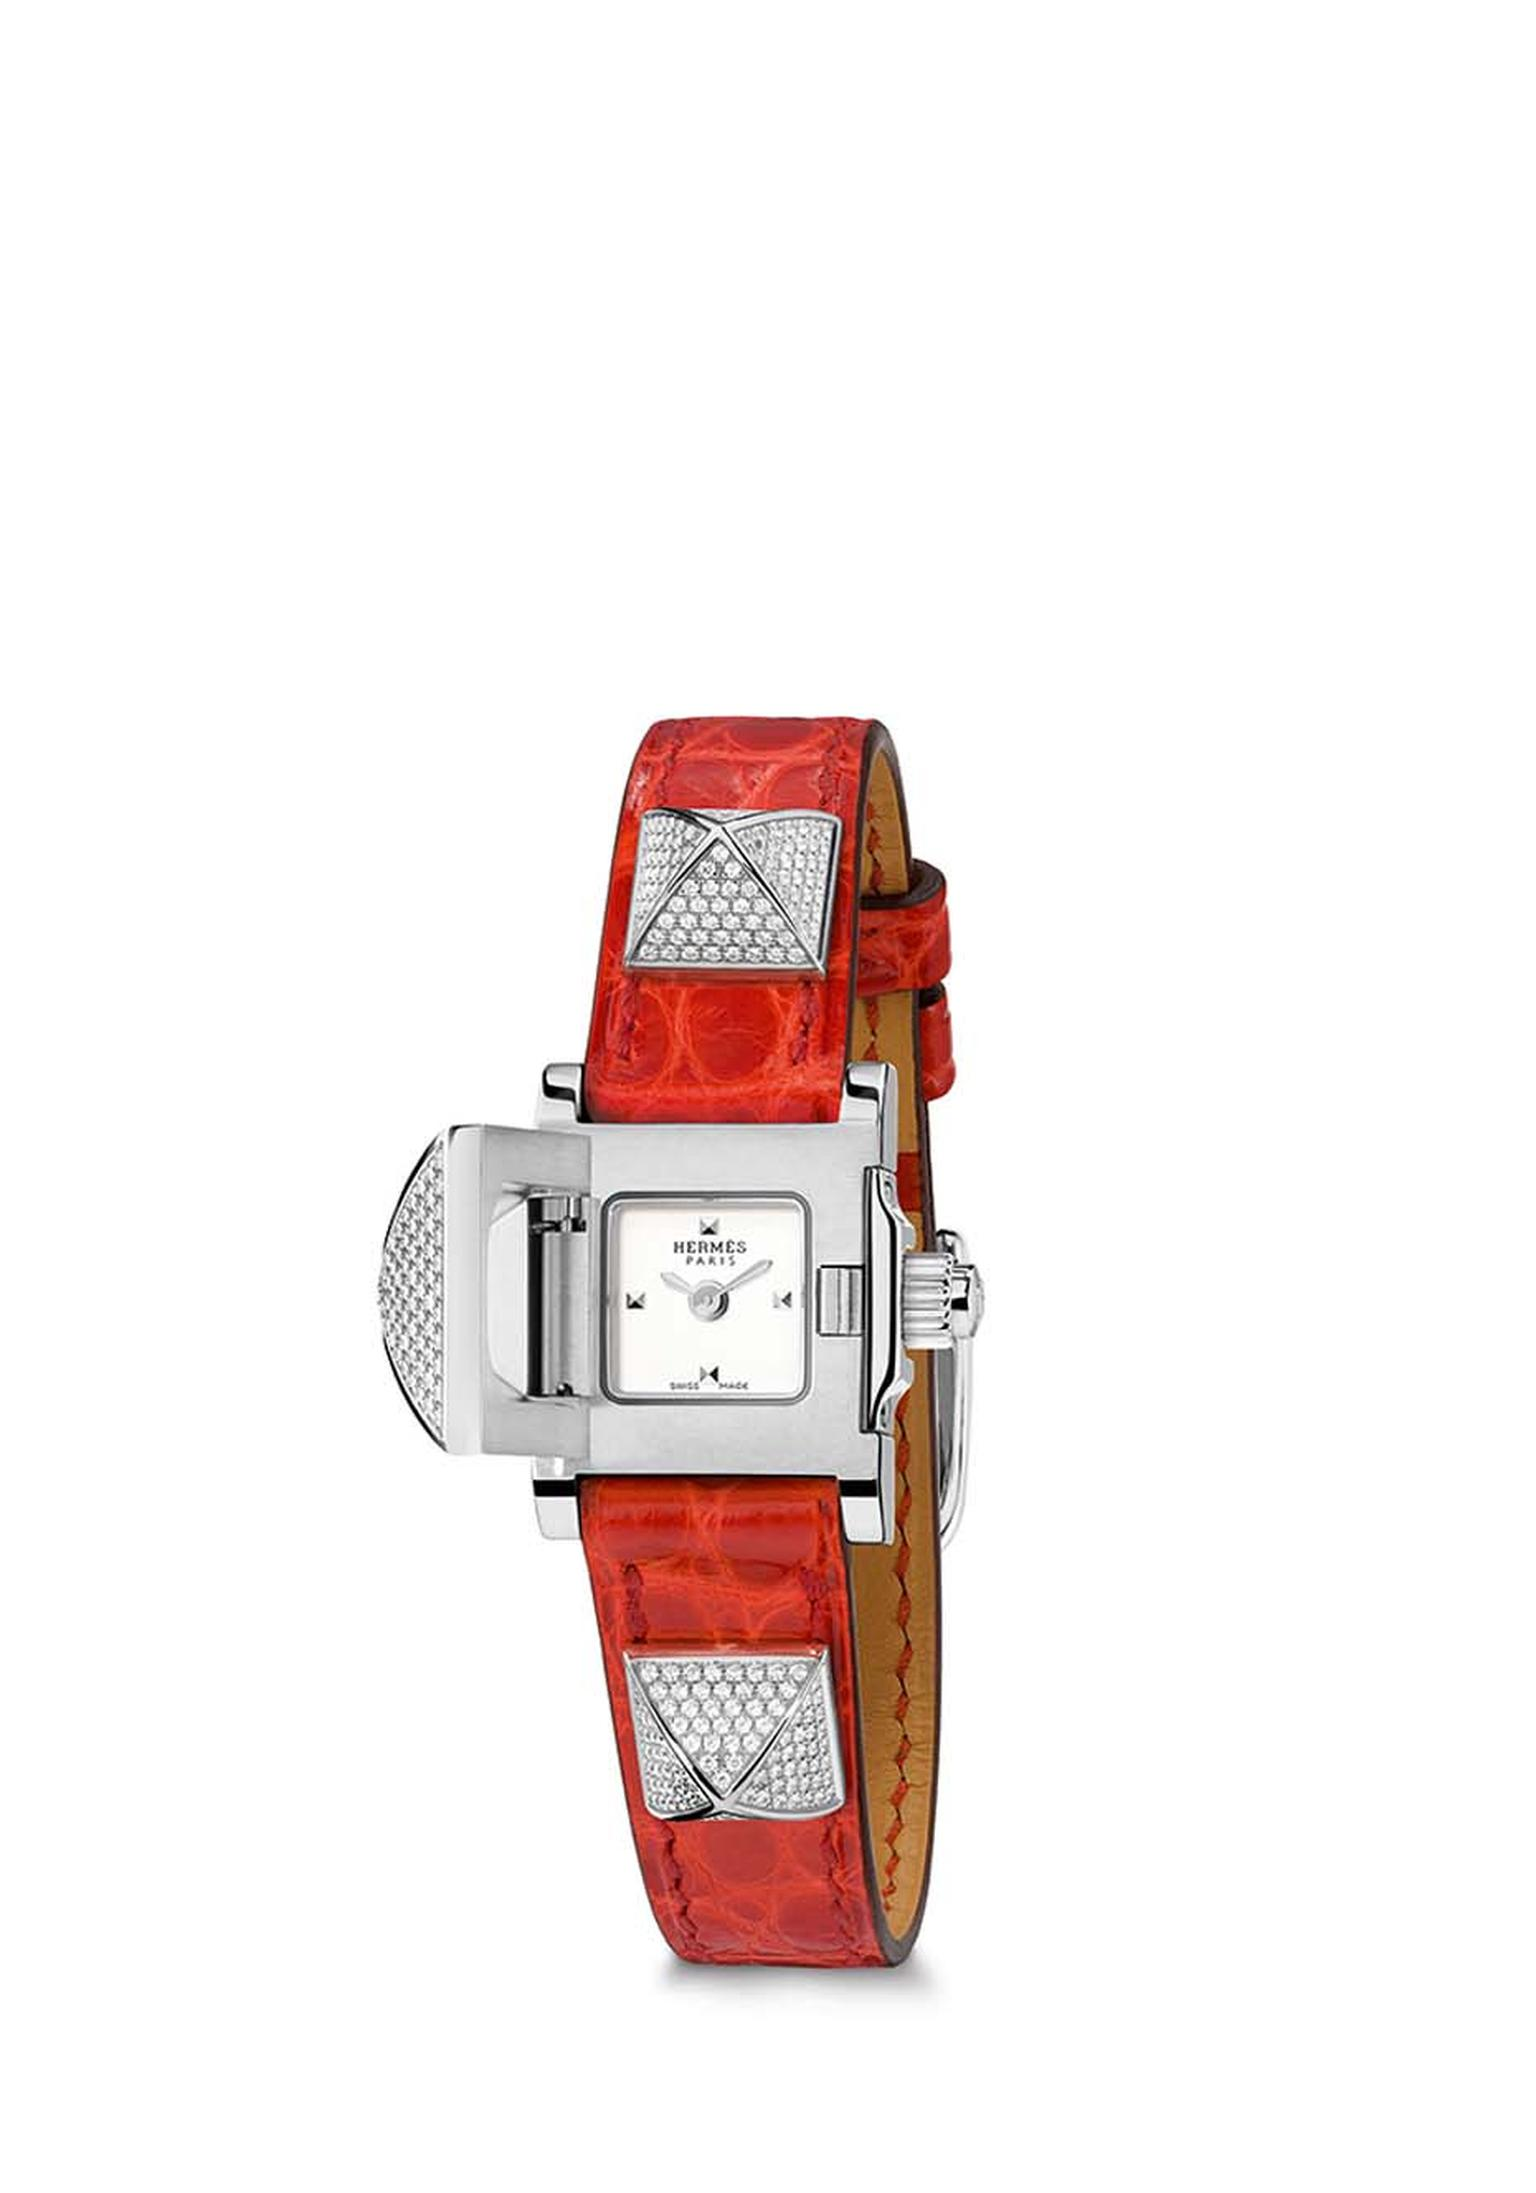 Hermès Médor watch with a smooth red agate alligator strap and three full diamond-set pyramids.